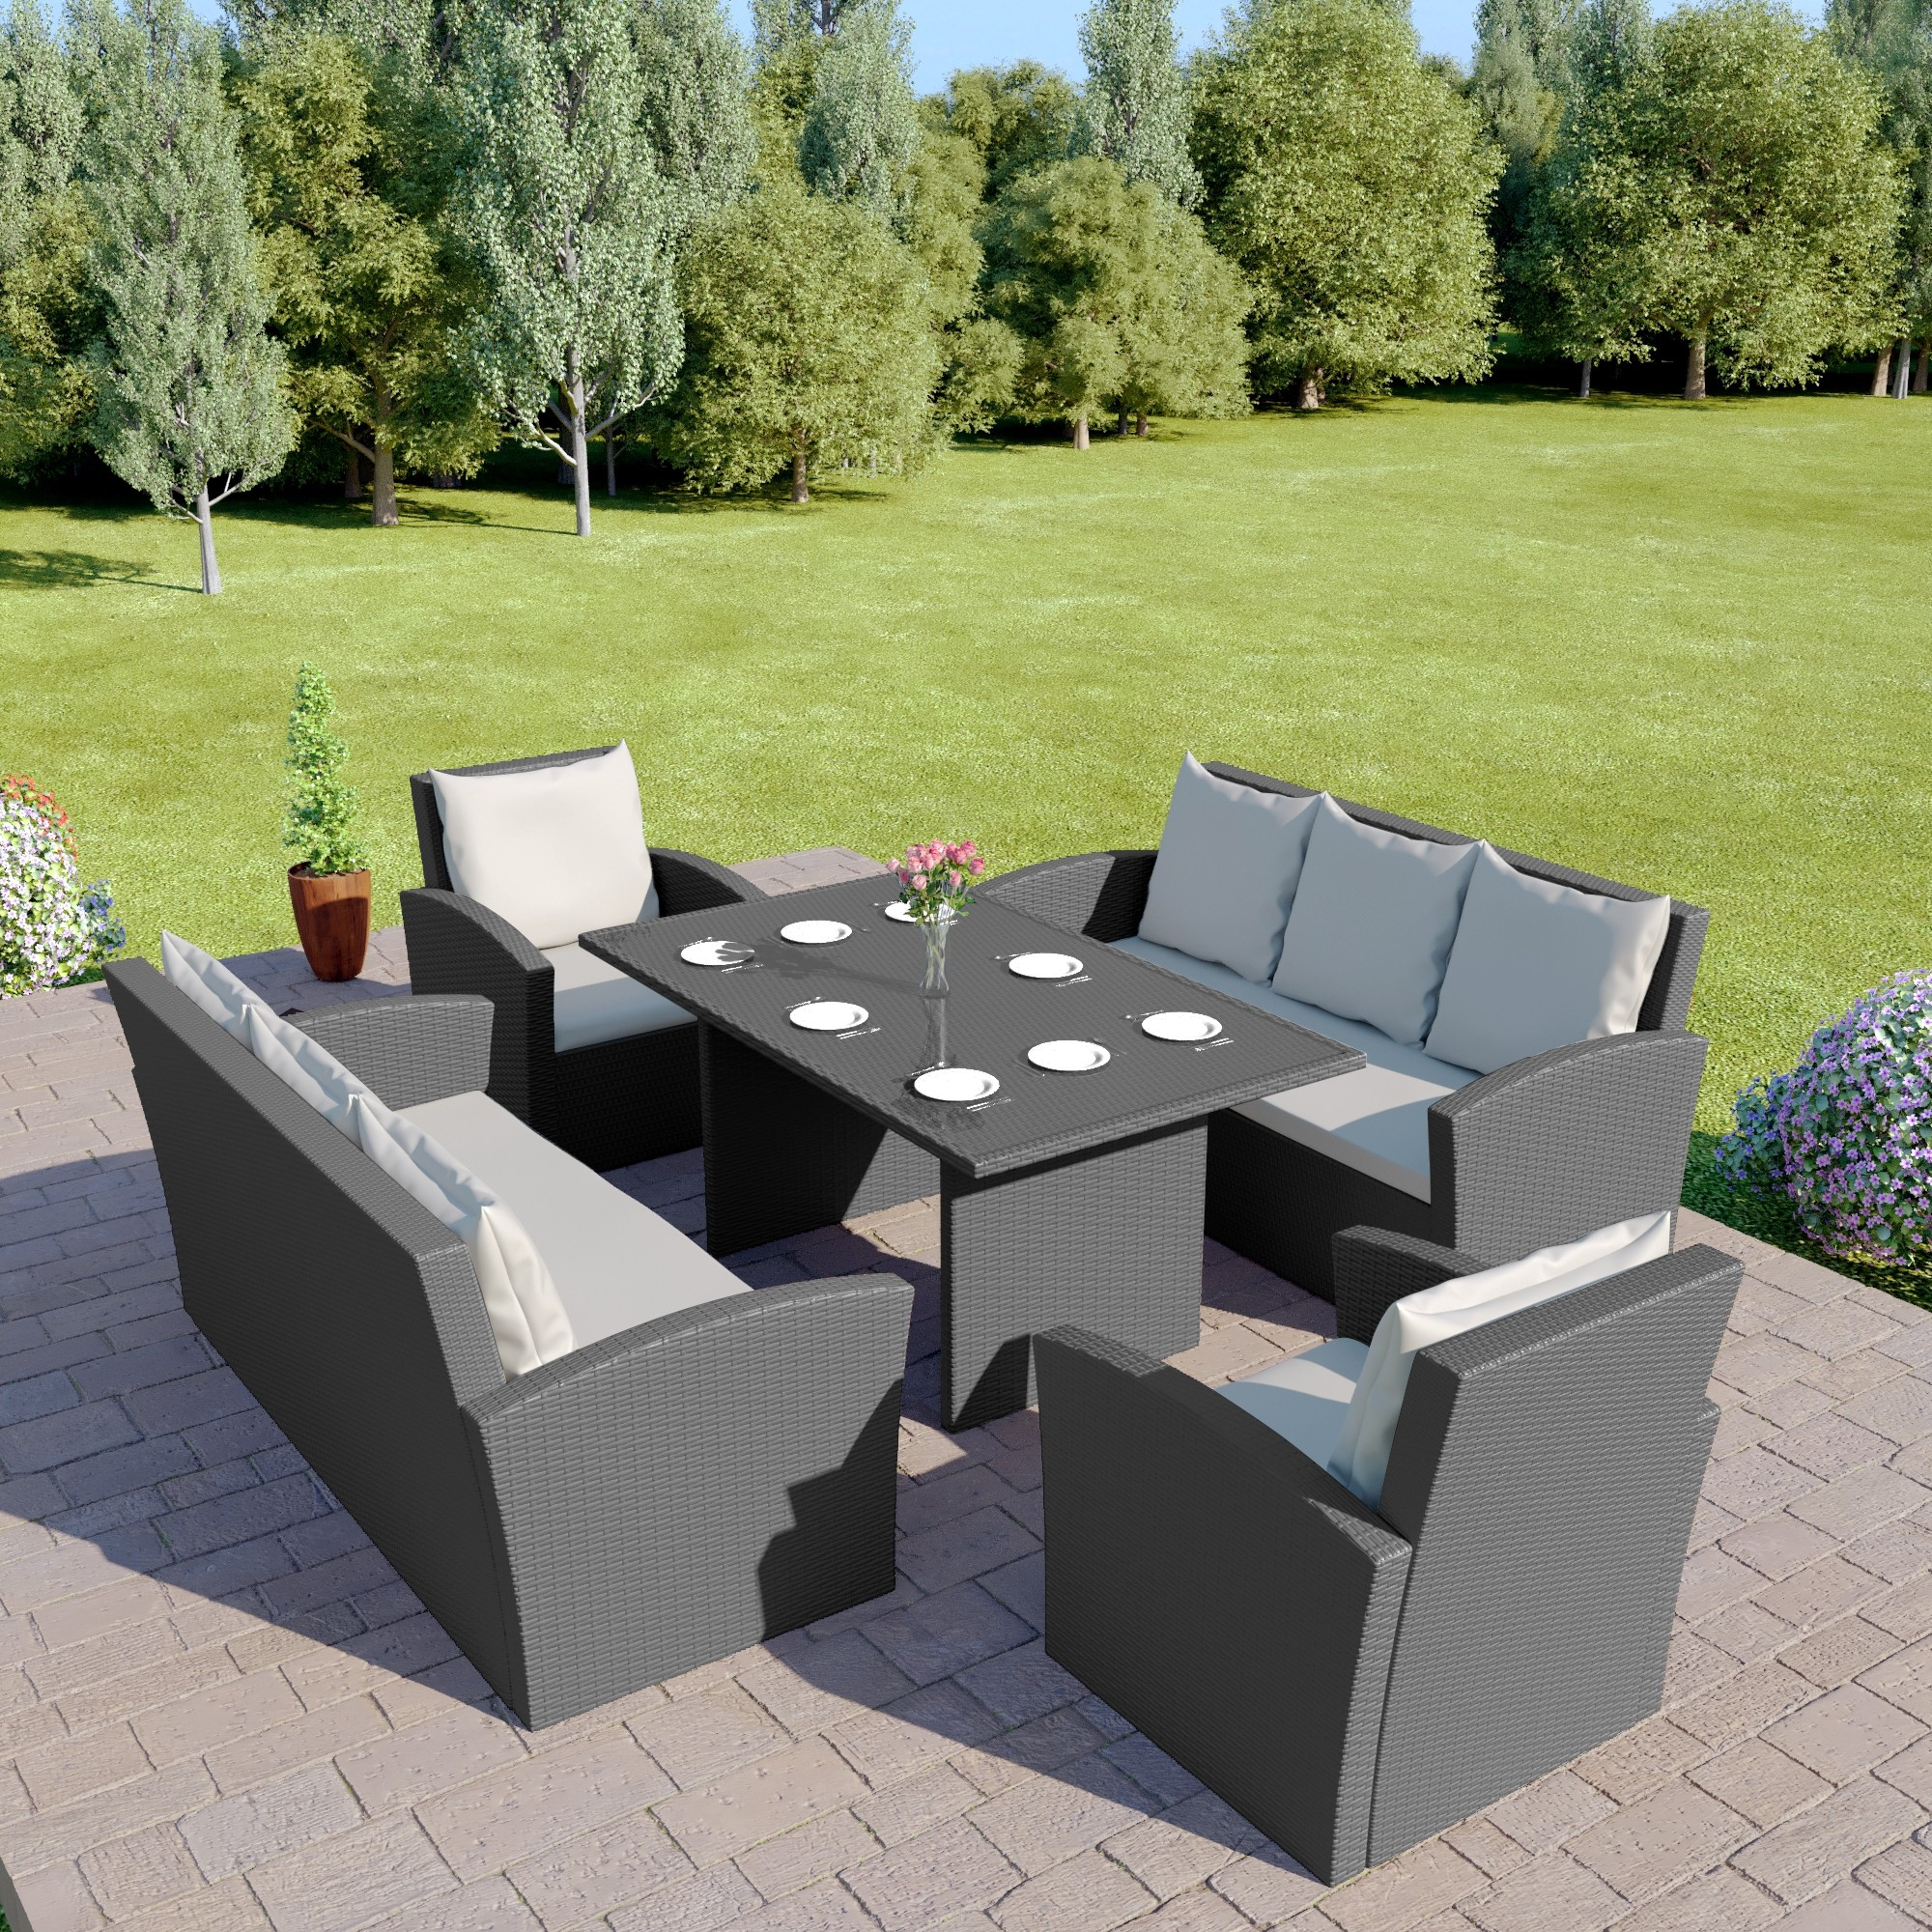 Details About Rattan Garden Dining Table Furniture Patio Set 8 Seat Sofa Black Grey Brown pertaining to sizing 2000 X 2000